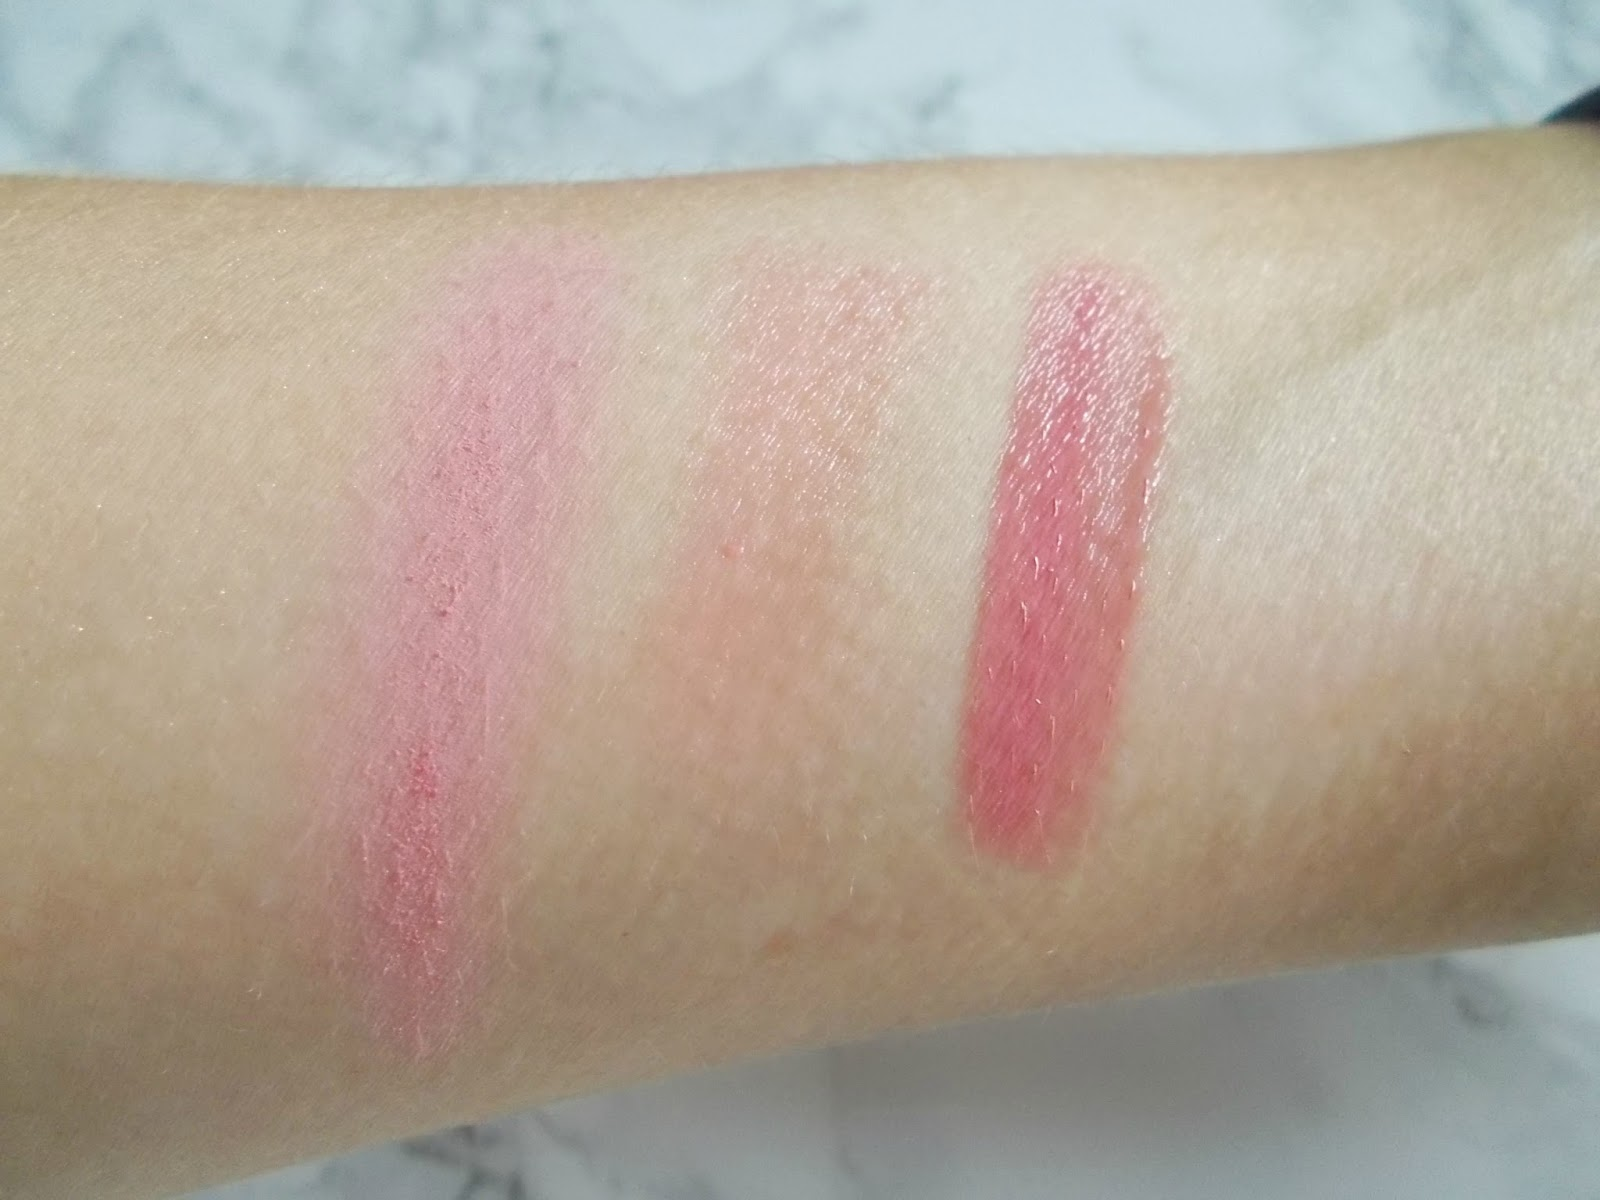 #glossierpink the balm down boy blush benefit posie balm too faced melted peony swatches